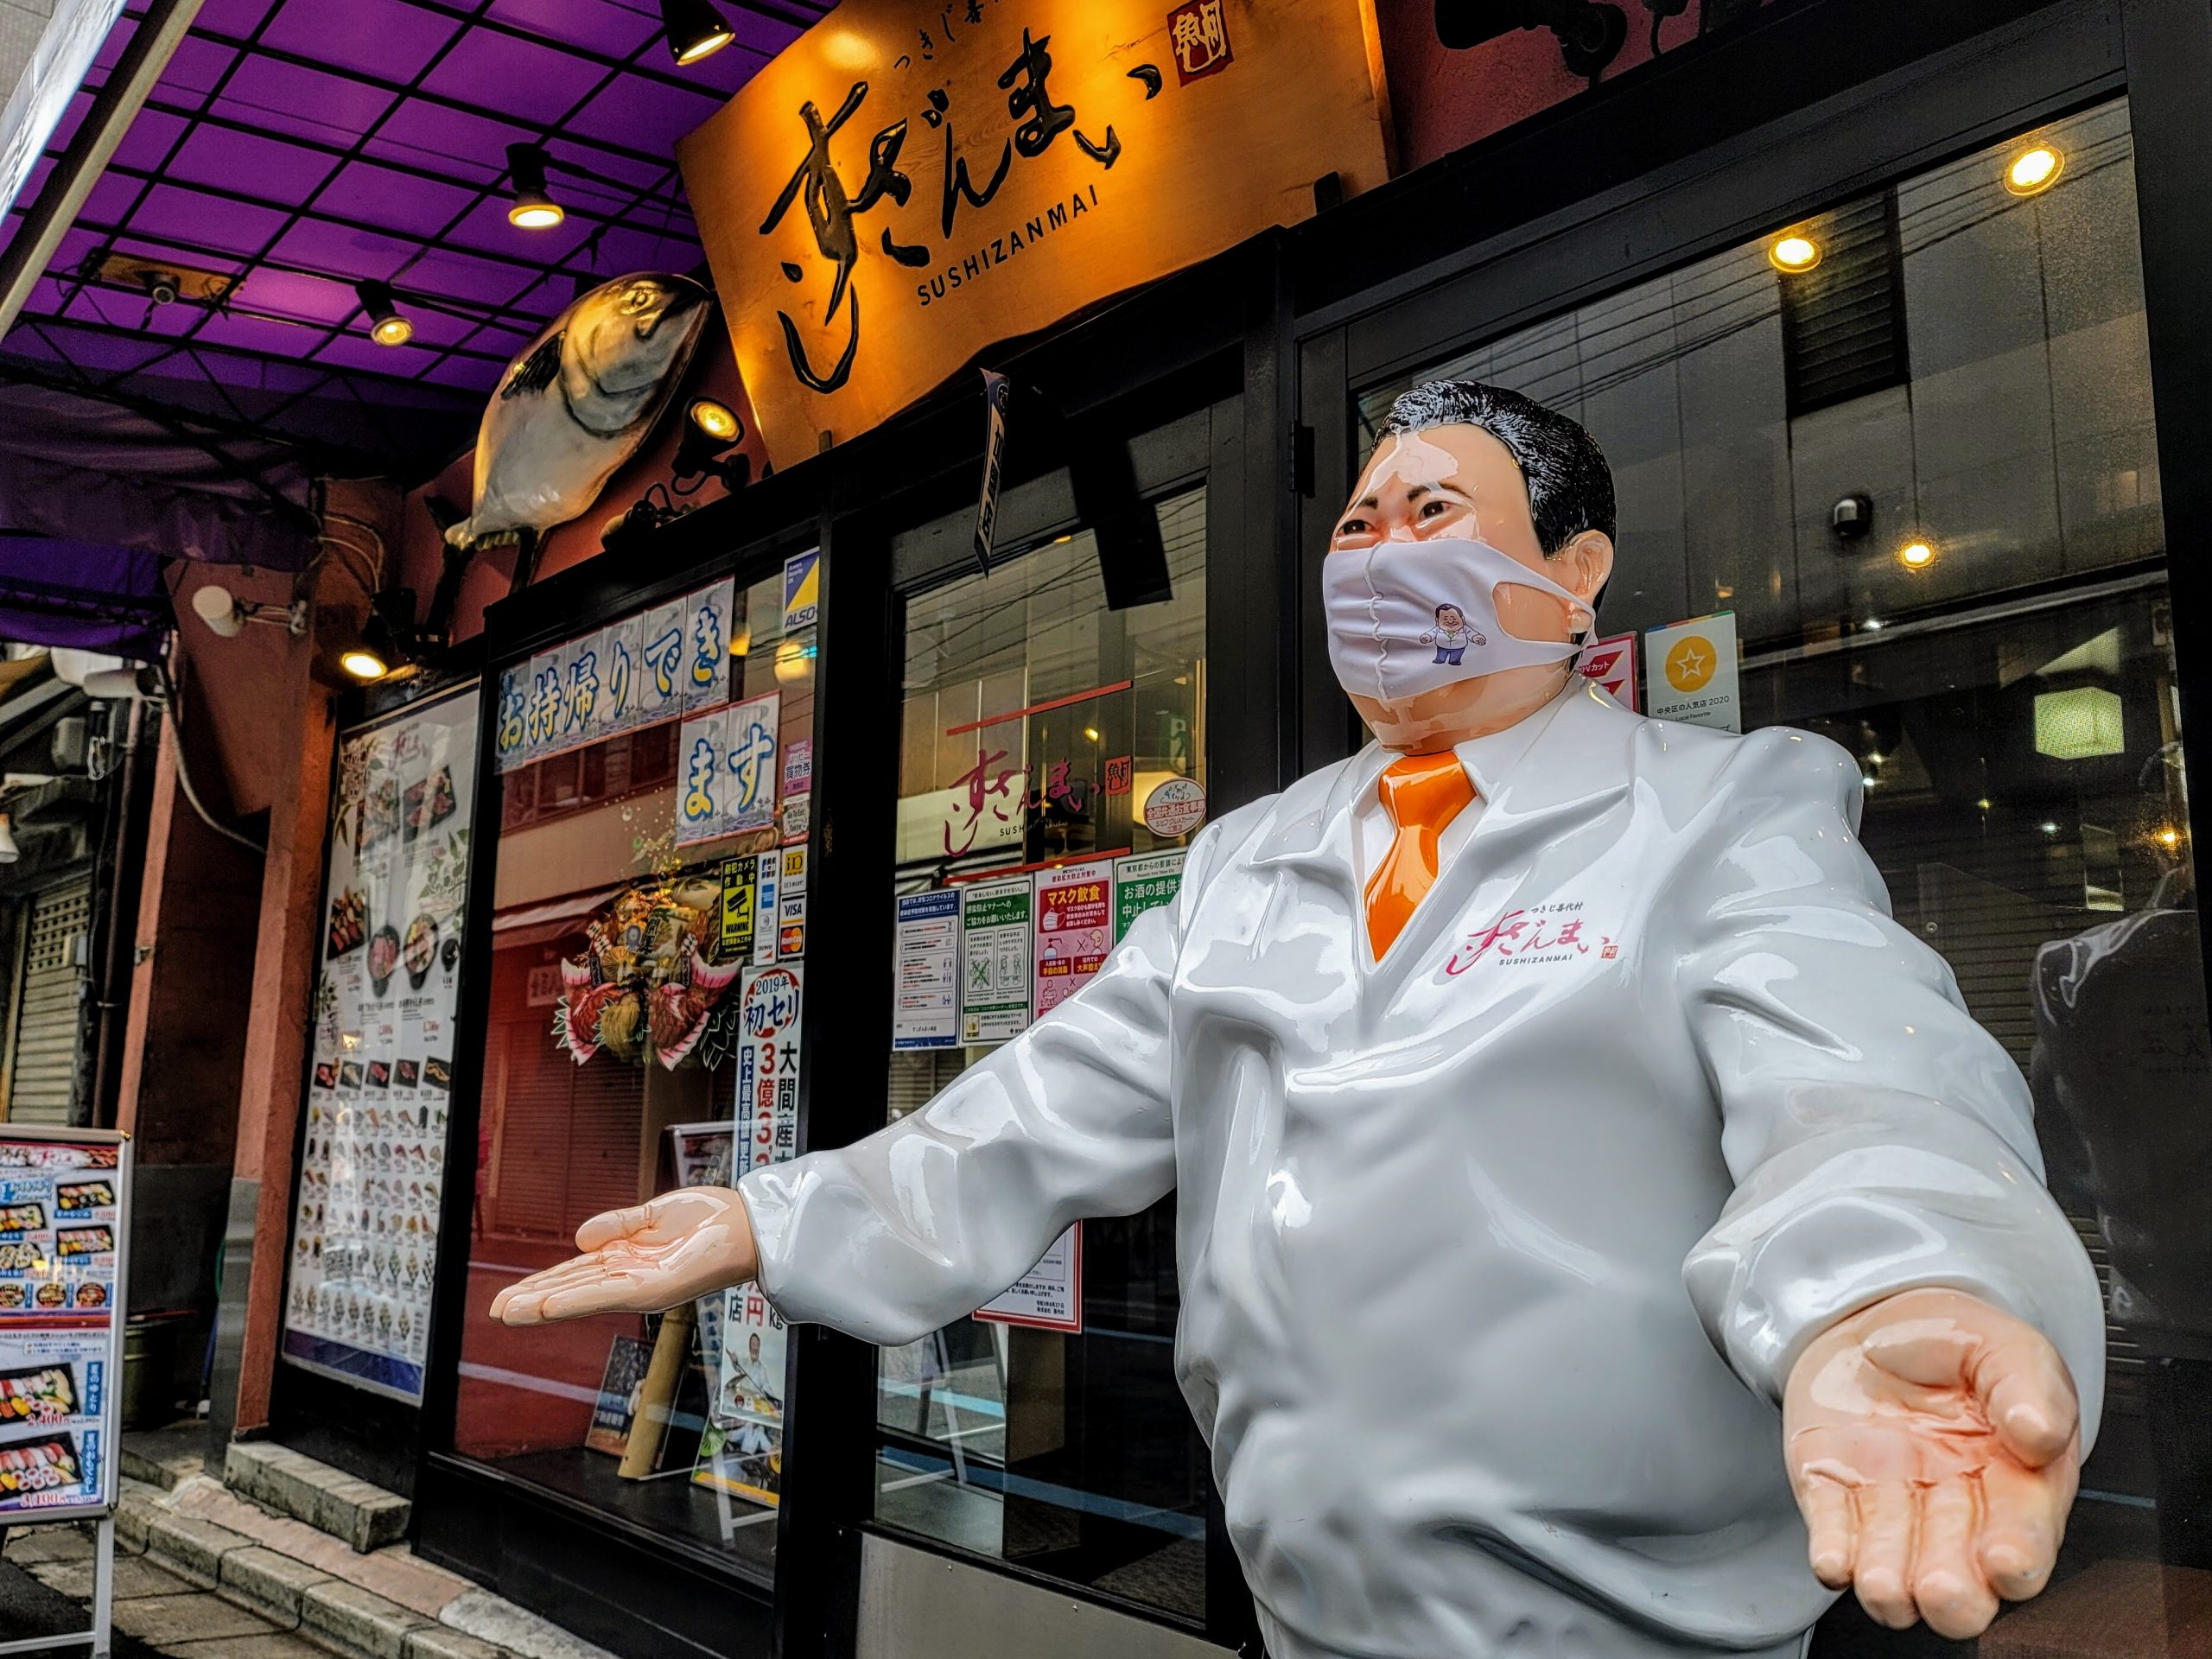 The first sushizanmai in Tsukiji with the founder wearing a mask